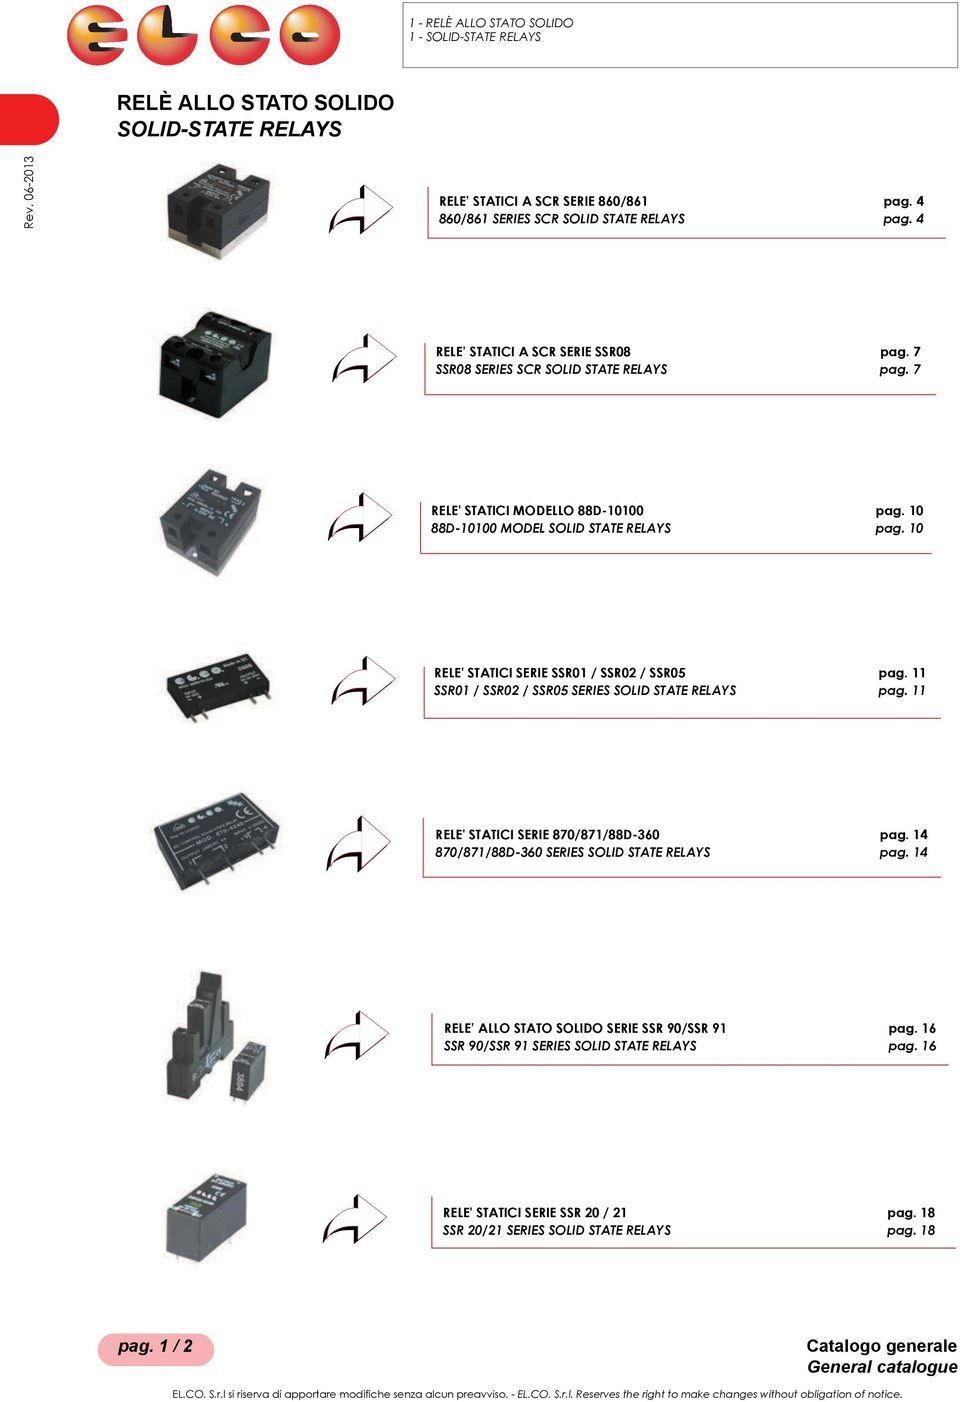 11 SSR01 / SSR02 / SSR05 SERIES SOLID STATE RELAYS pag. 11 RELE' STATICI SERIE 870/871/88D-360 pag. 14 870/871/88D-360 SERIES SOLID STATE RELAYS pag.